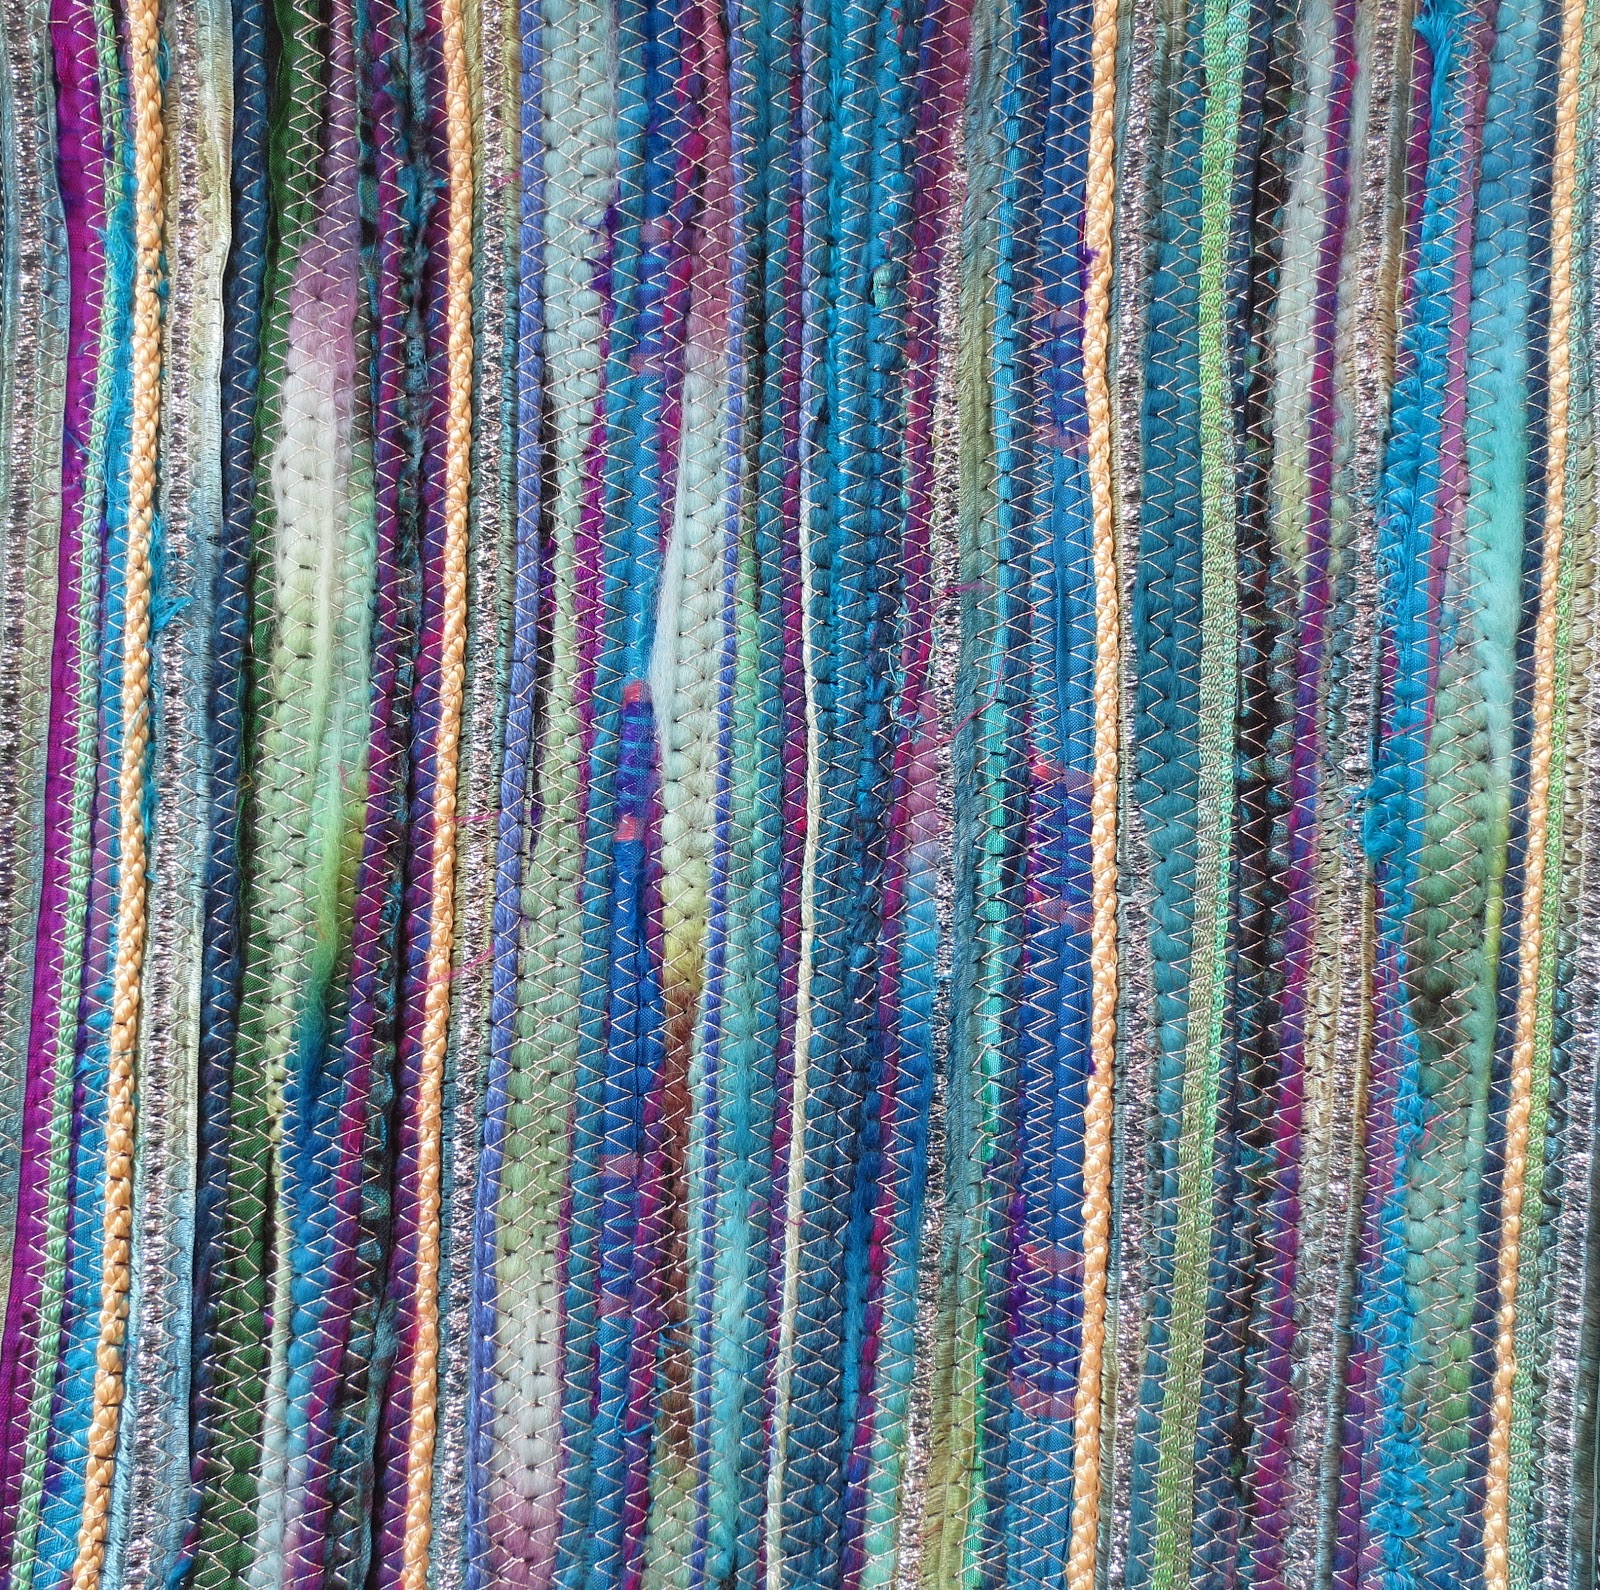 Couch Cord Liz Benjeddi Textile Art: January 2013